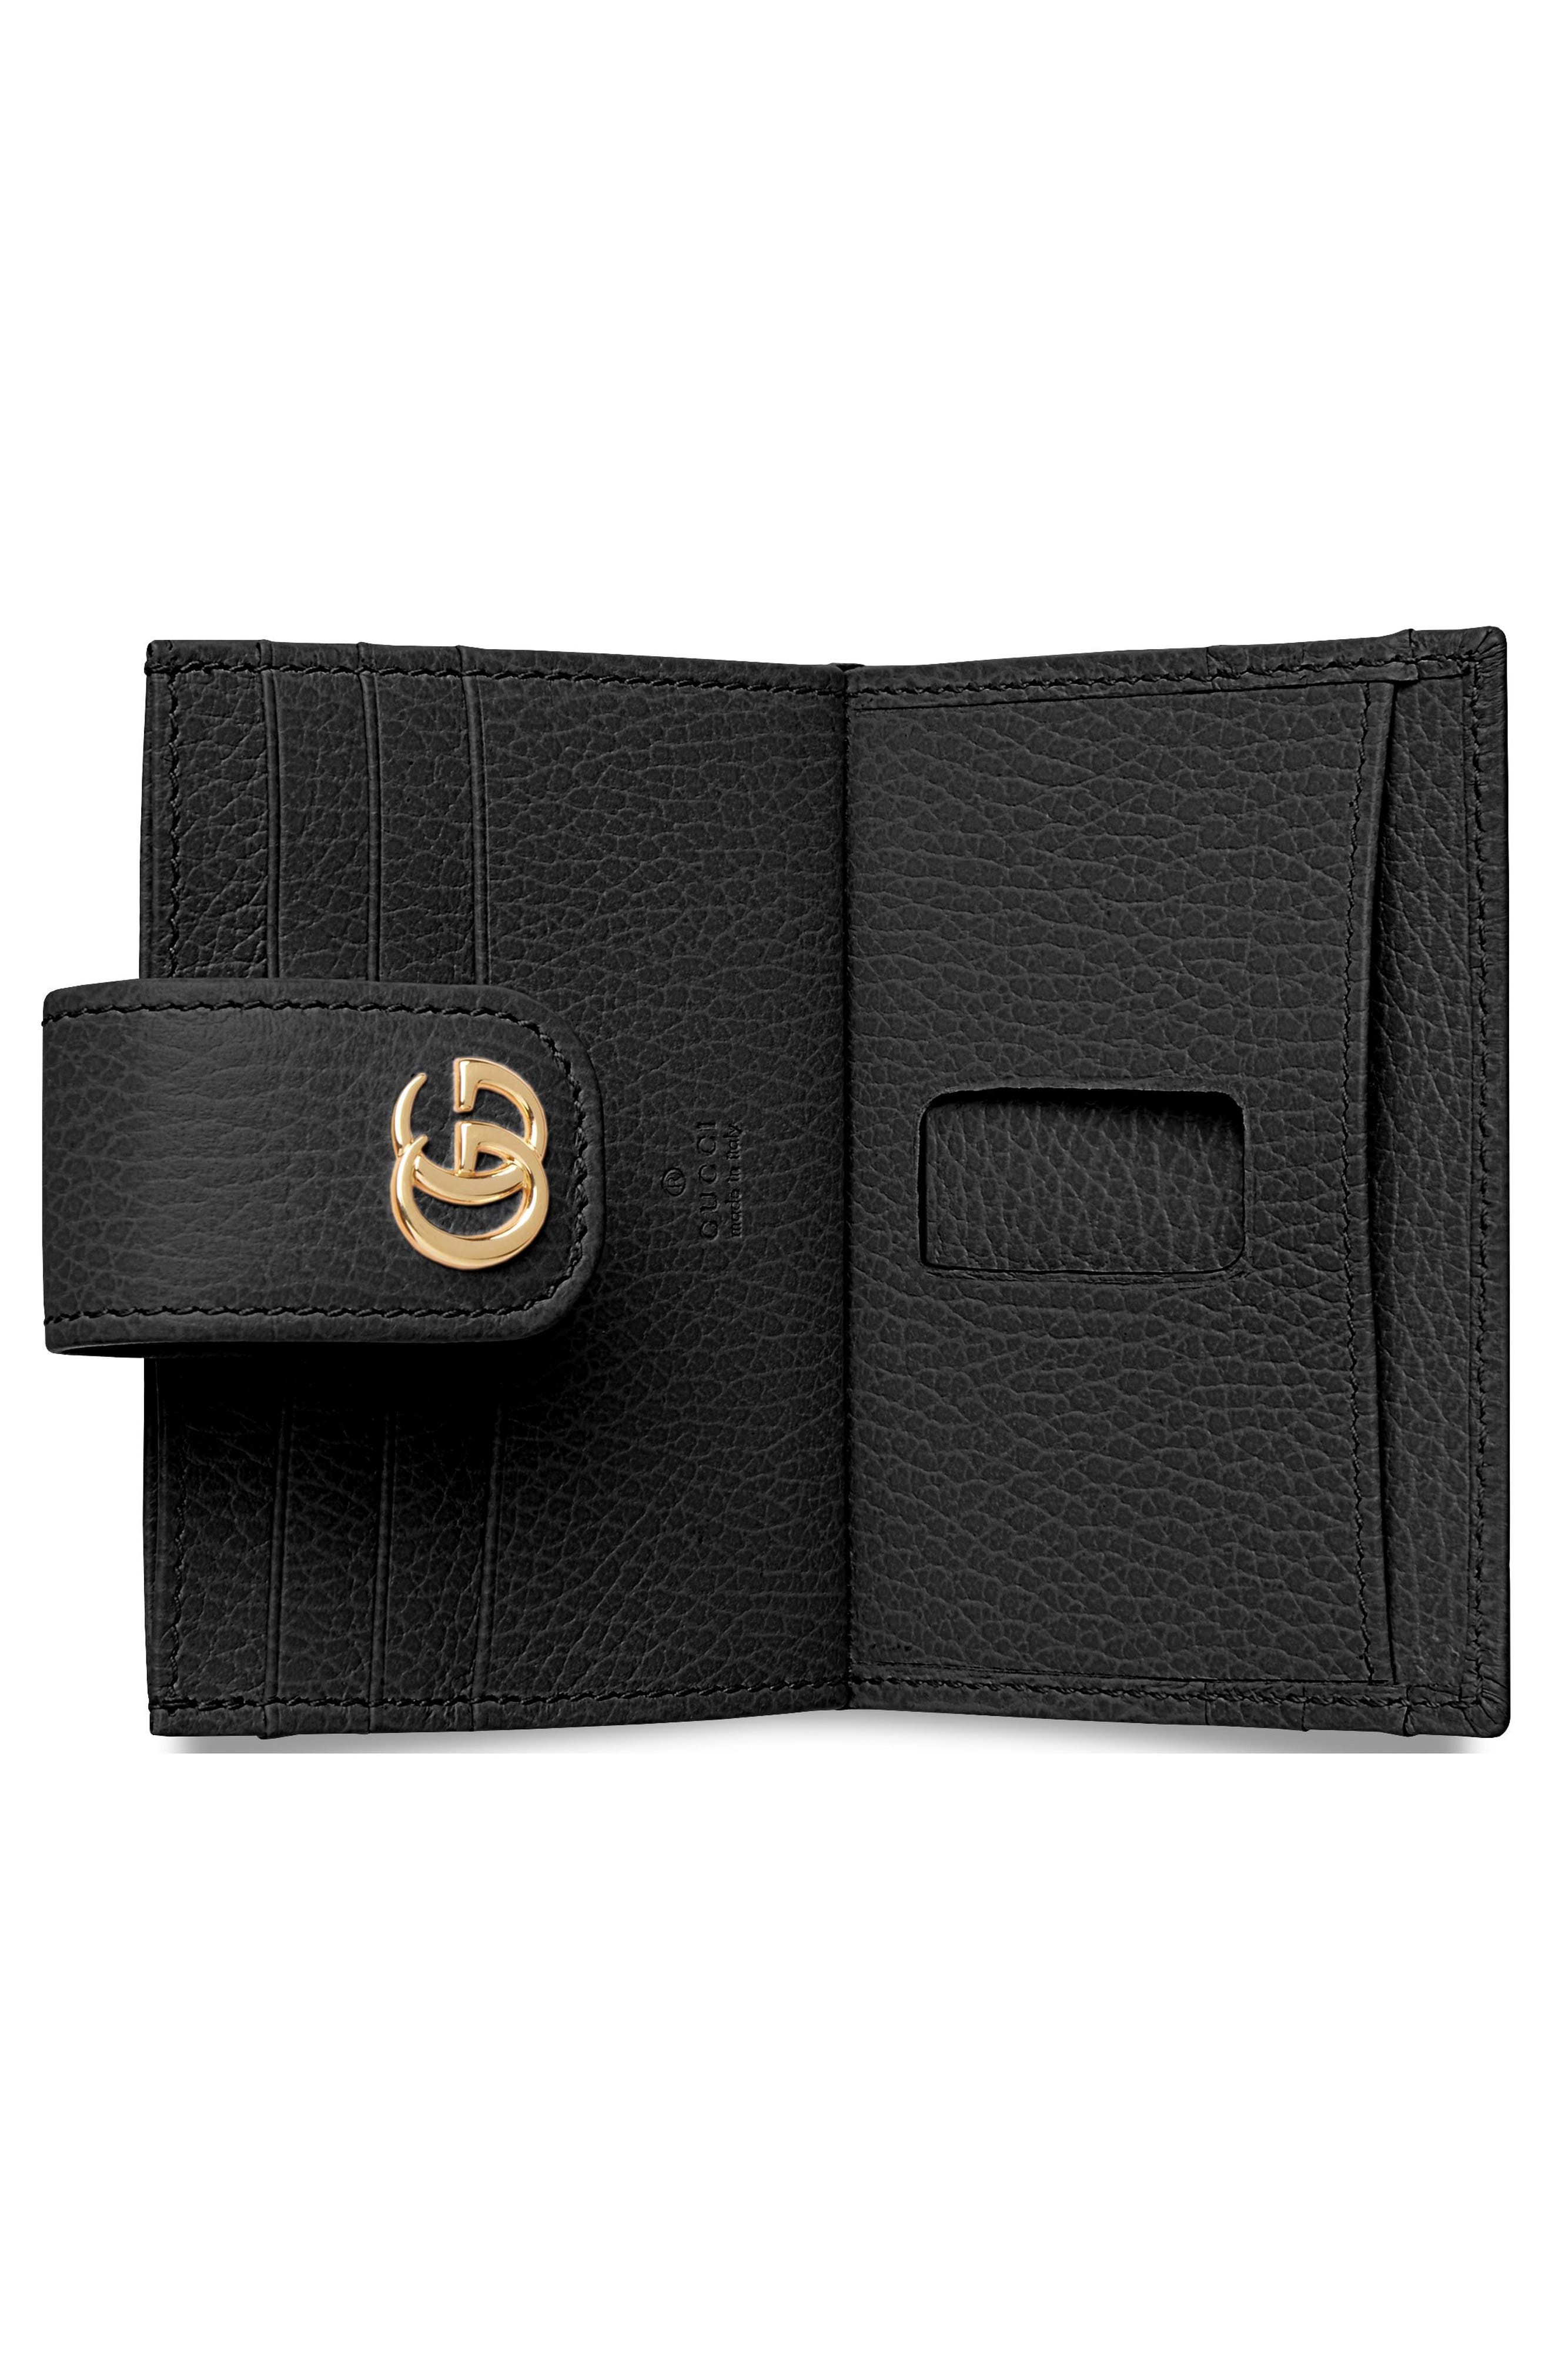 Card Cases Gucci for Women | Nordstrom